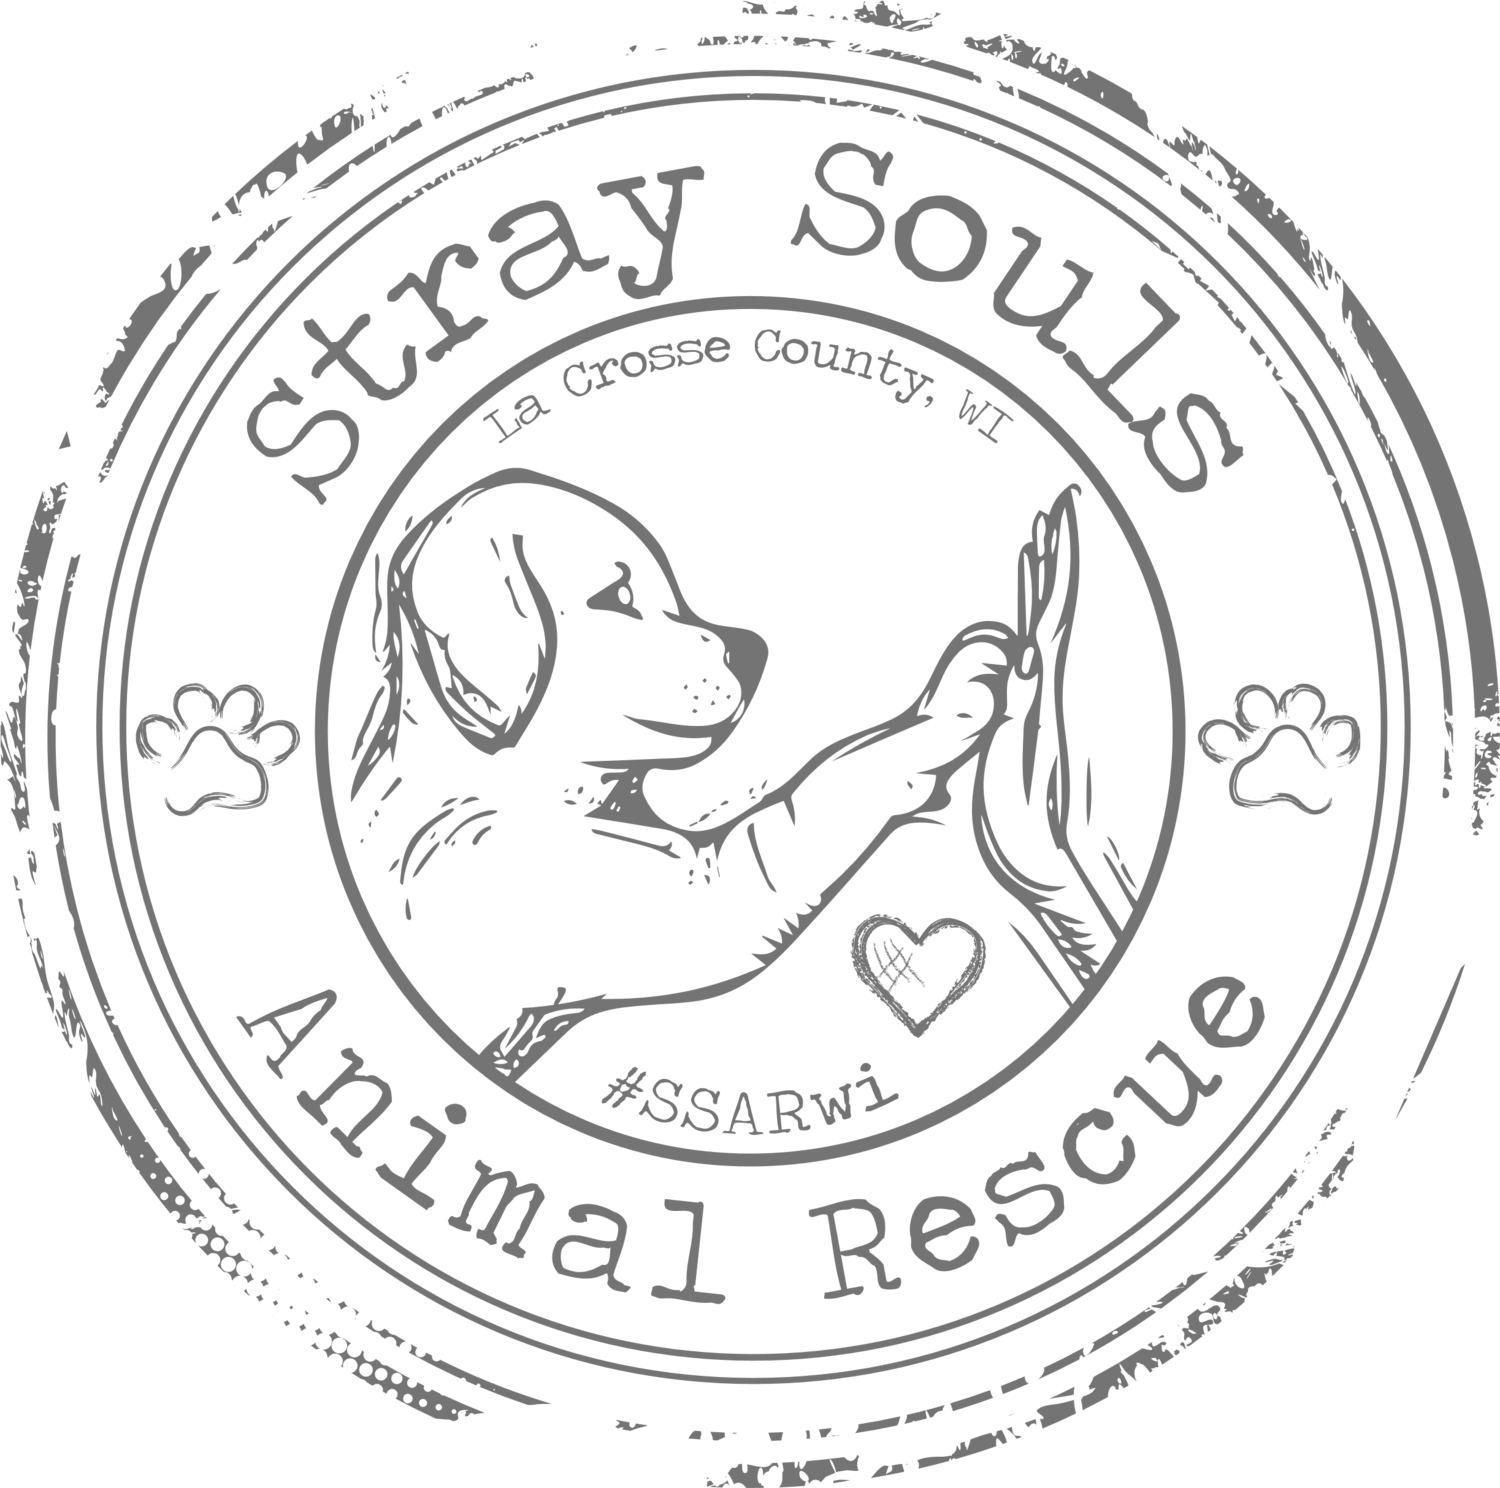 Stray Souls Animal Rescue